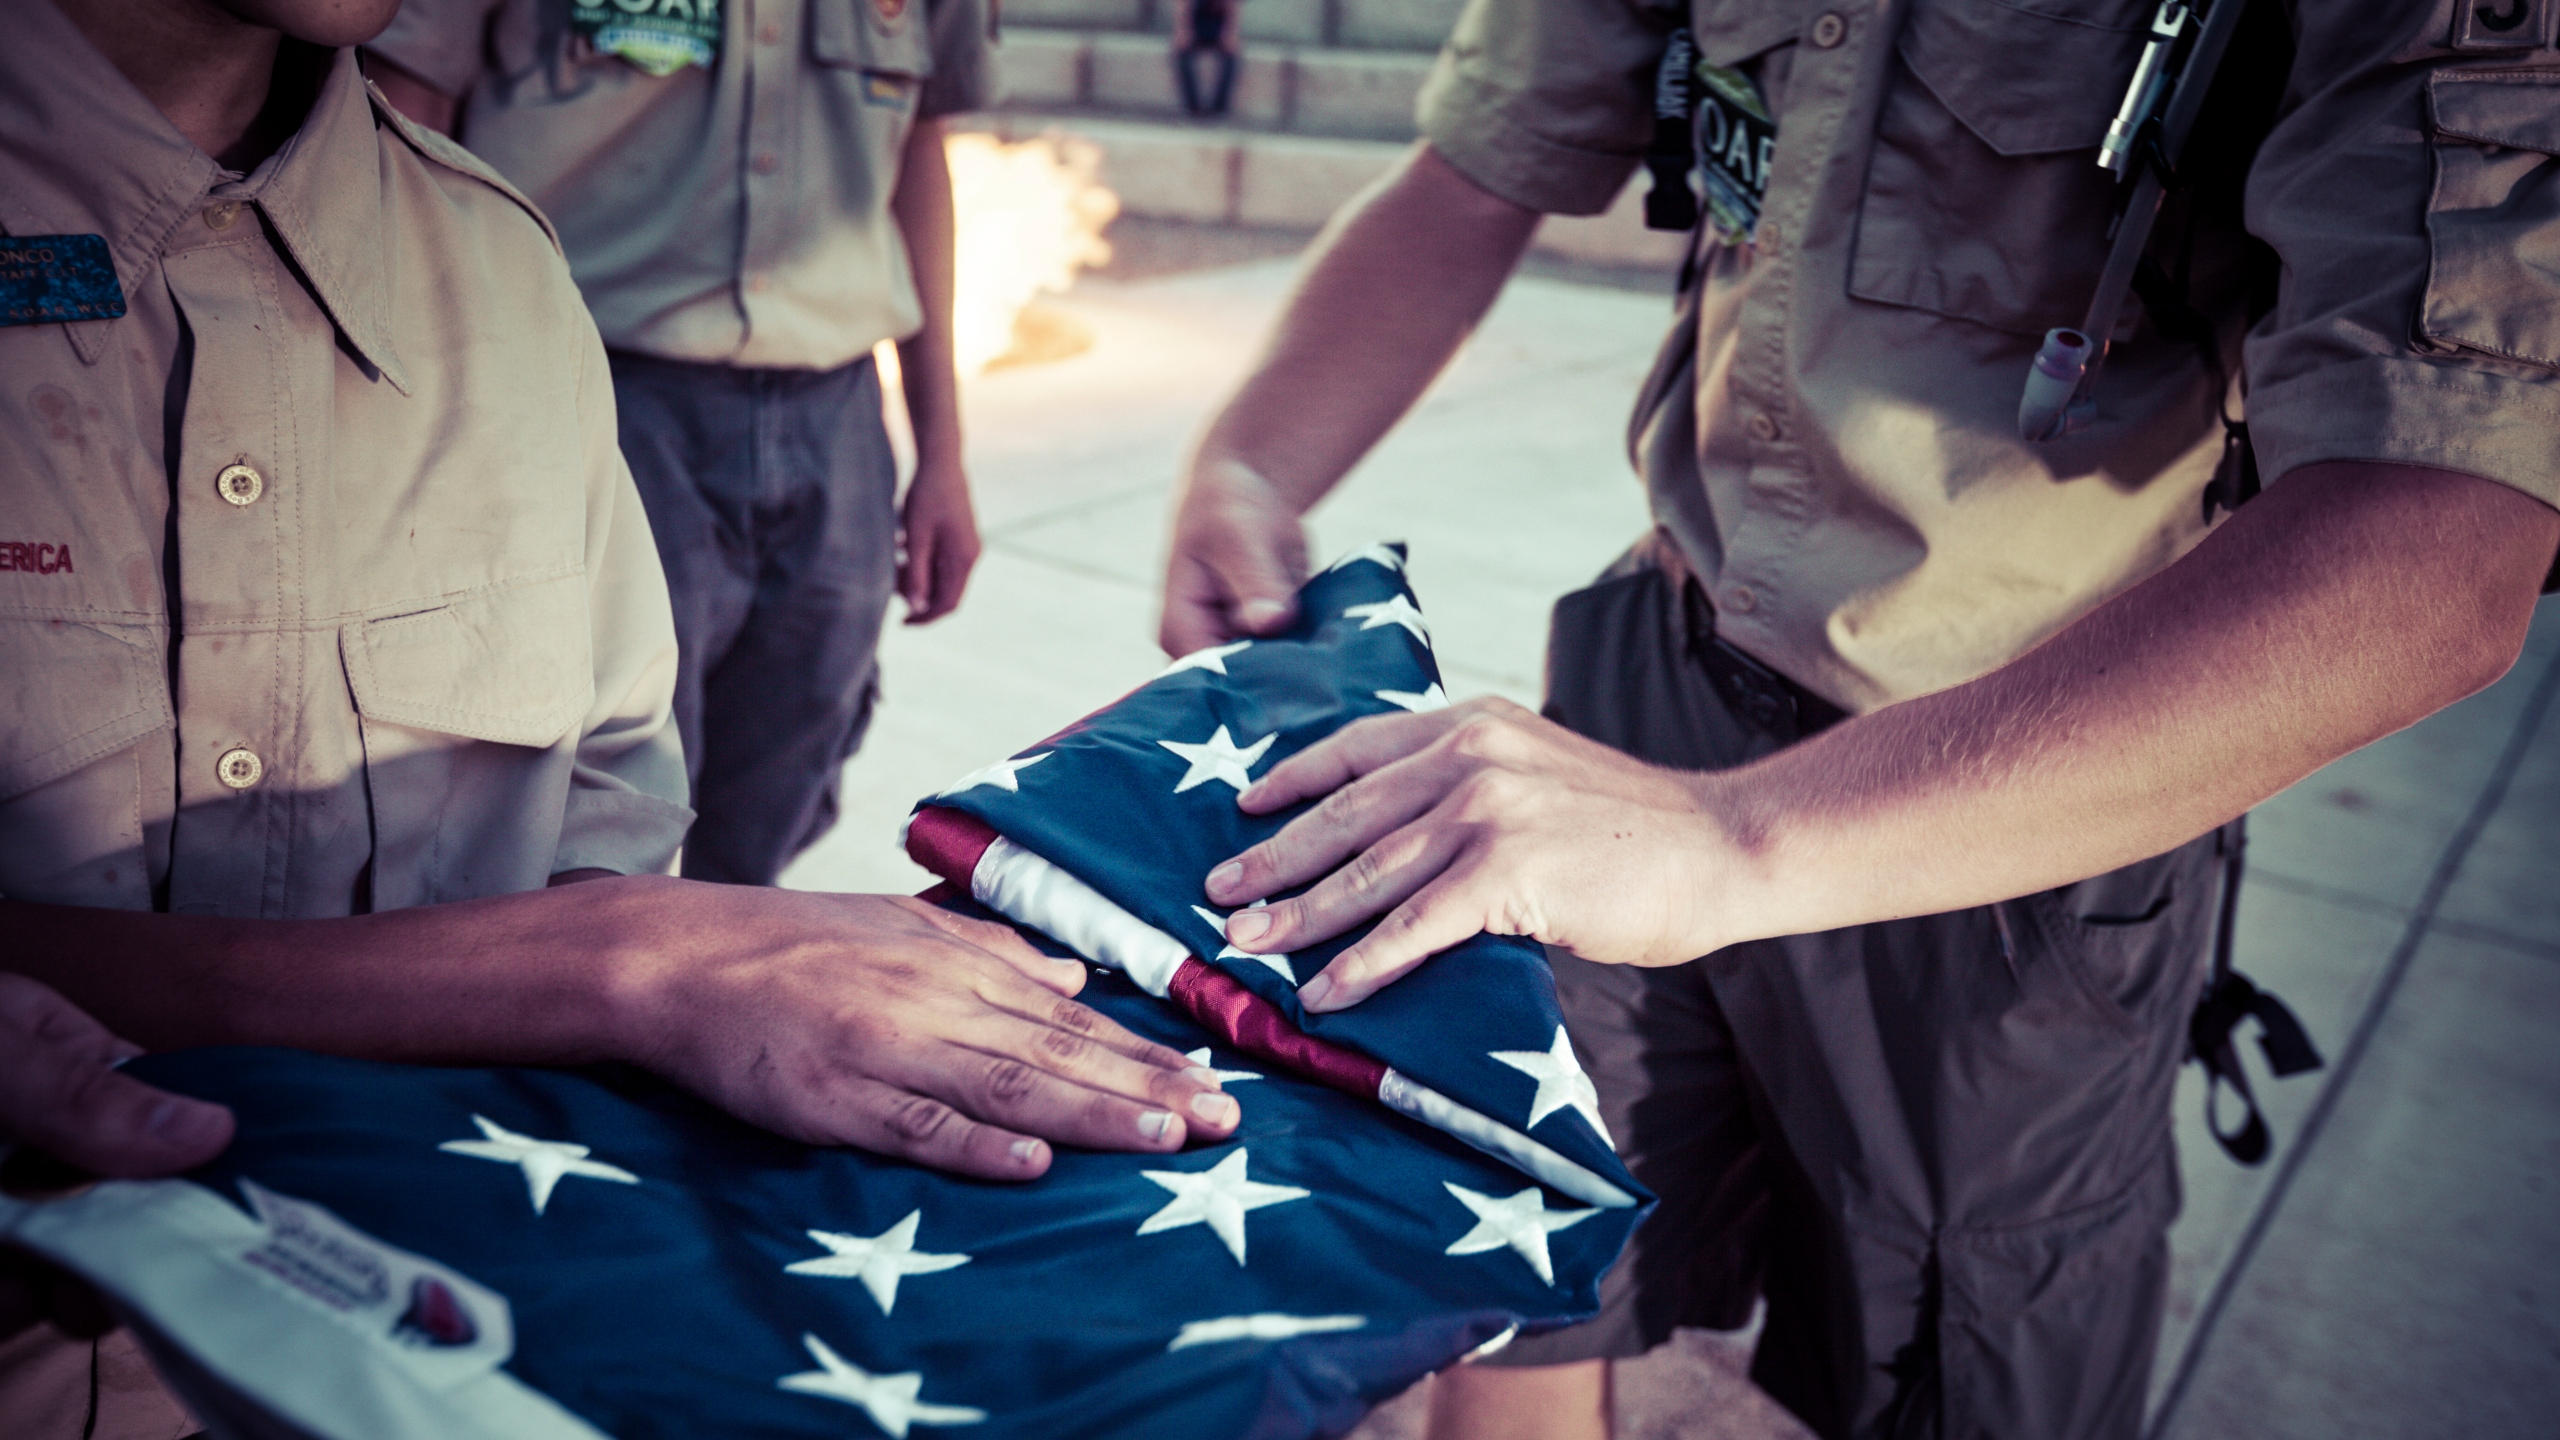 Boy Scouts fold an American flag during ceremony at their camp in Colorado.